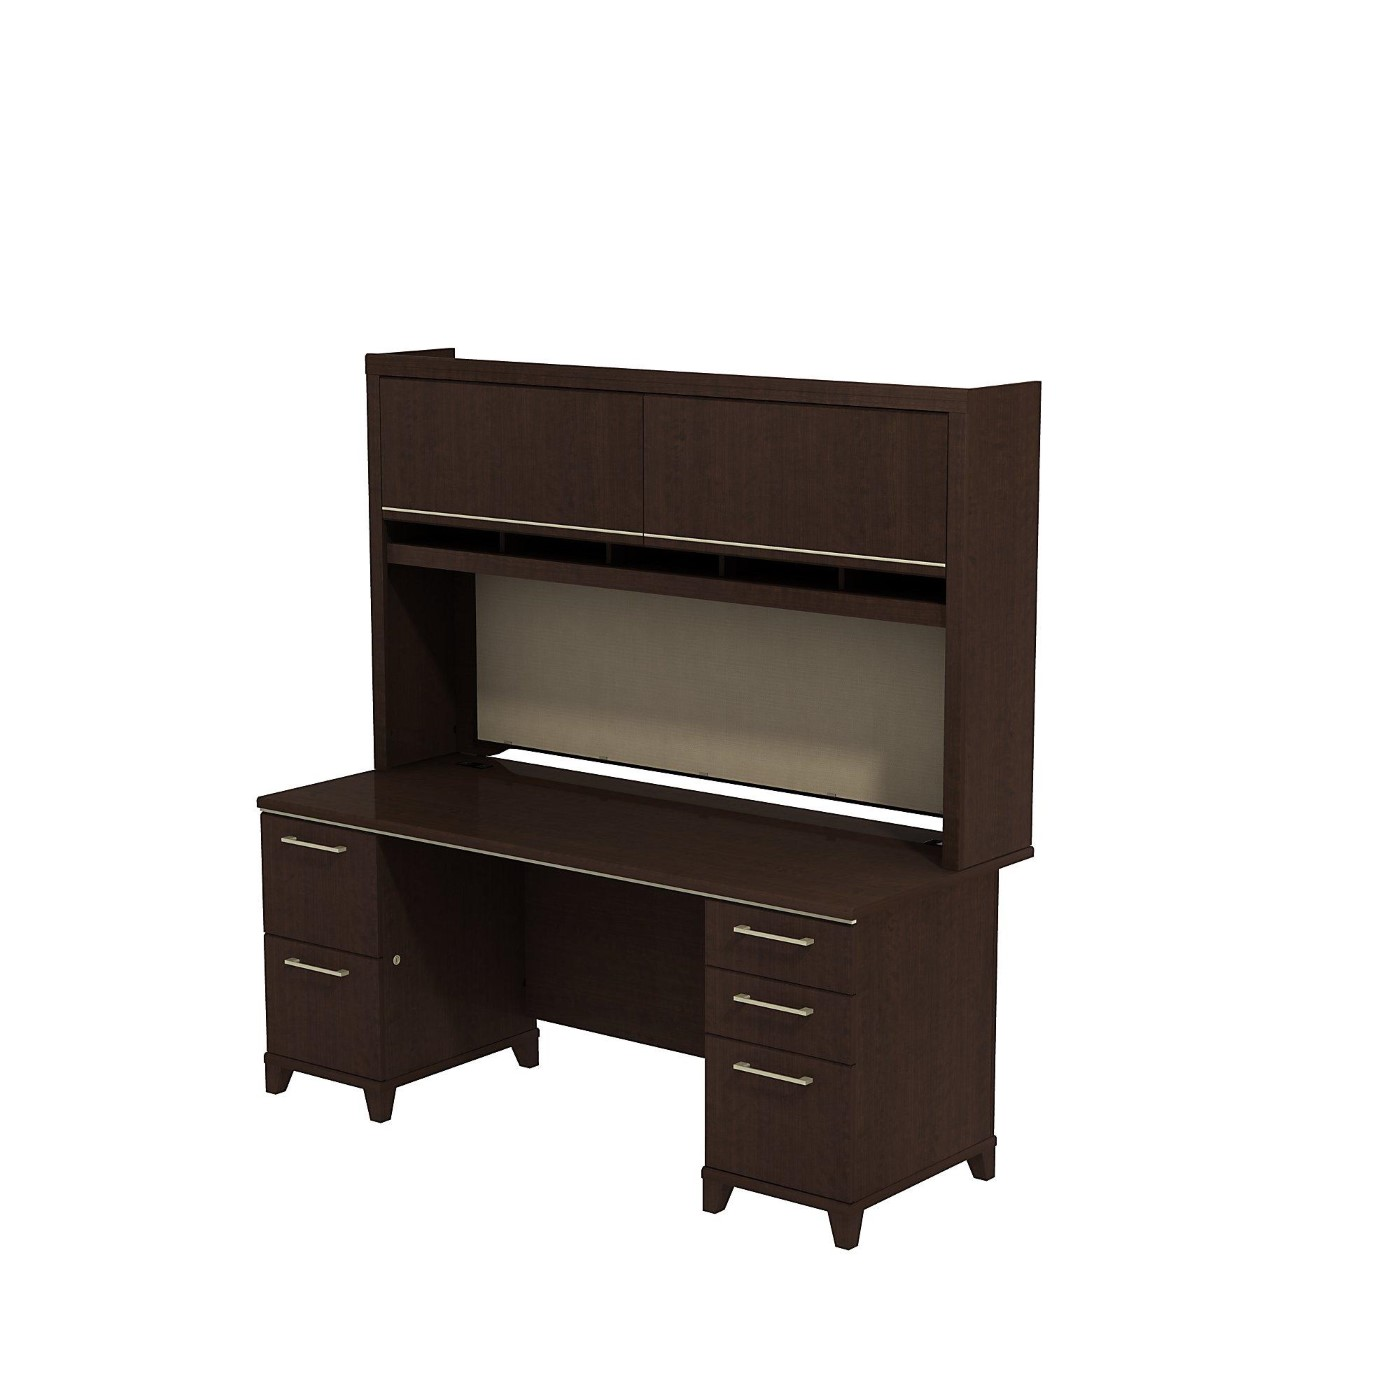 BUSH BUSINESS FURNITURE ENTERPRISE 72W X 30D OFFICE DESK WITH HUTCH AND 2 PEDESTALS. FREE SHIPPING  VIDEO BELOW.